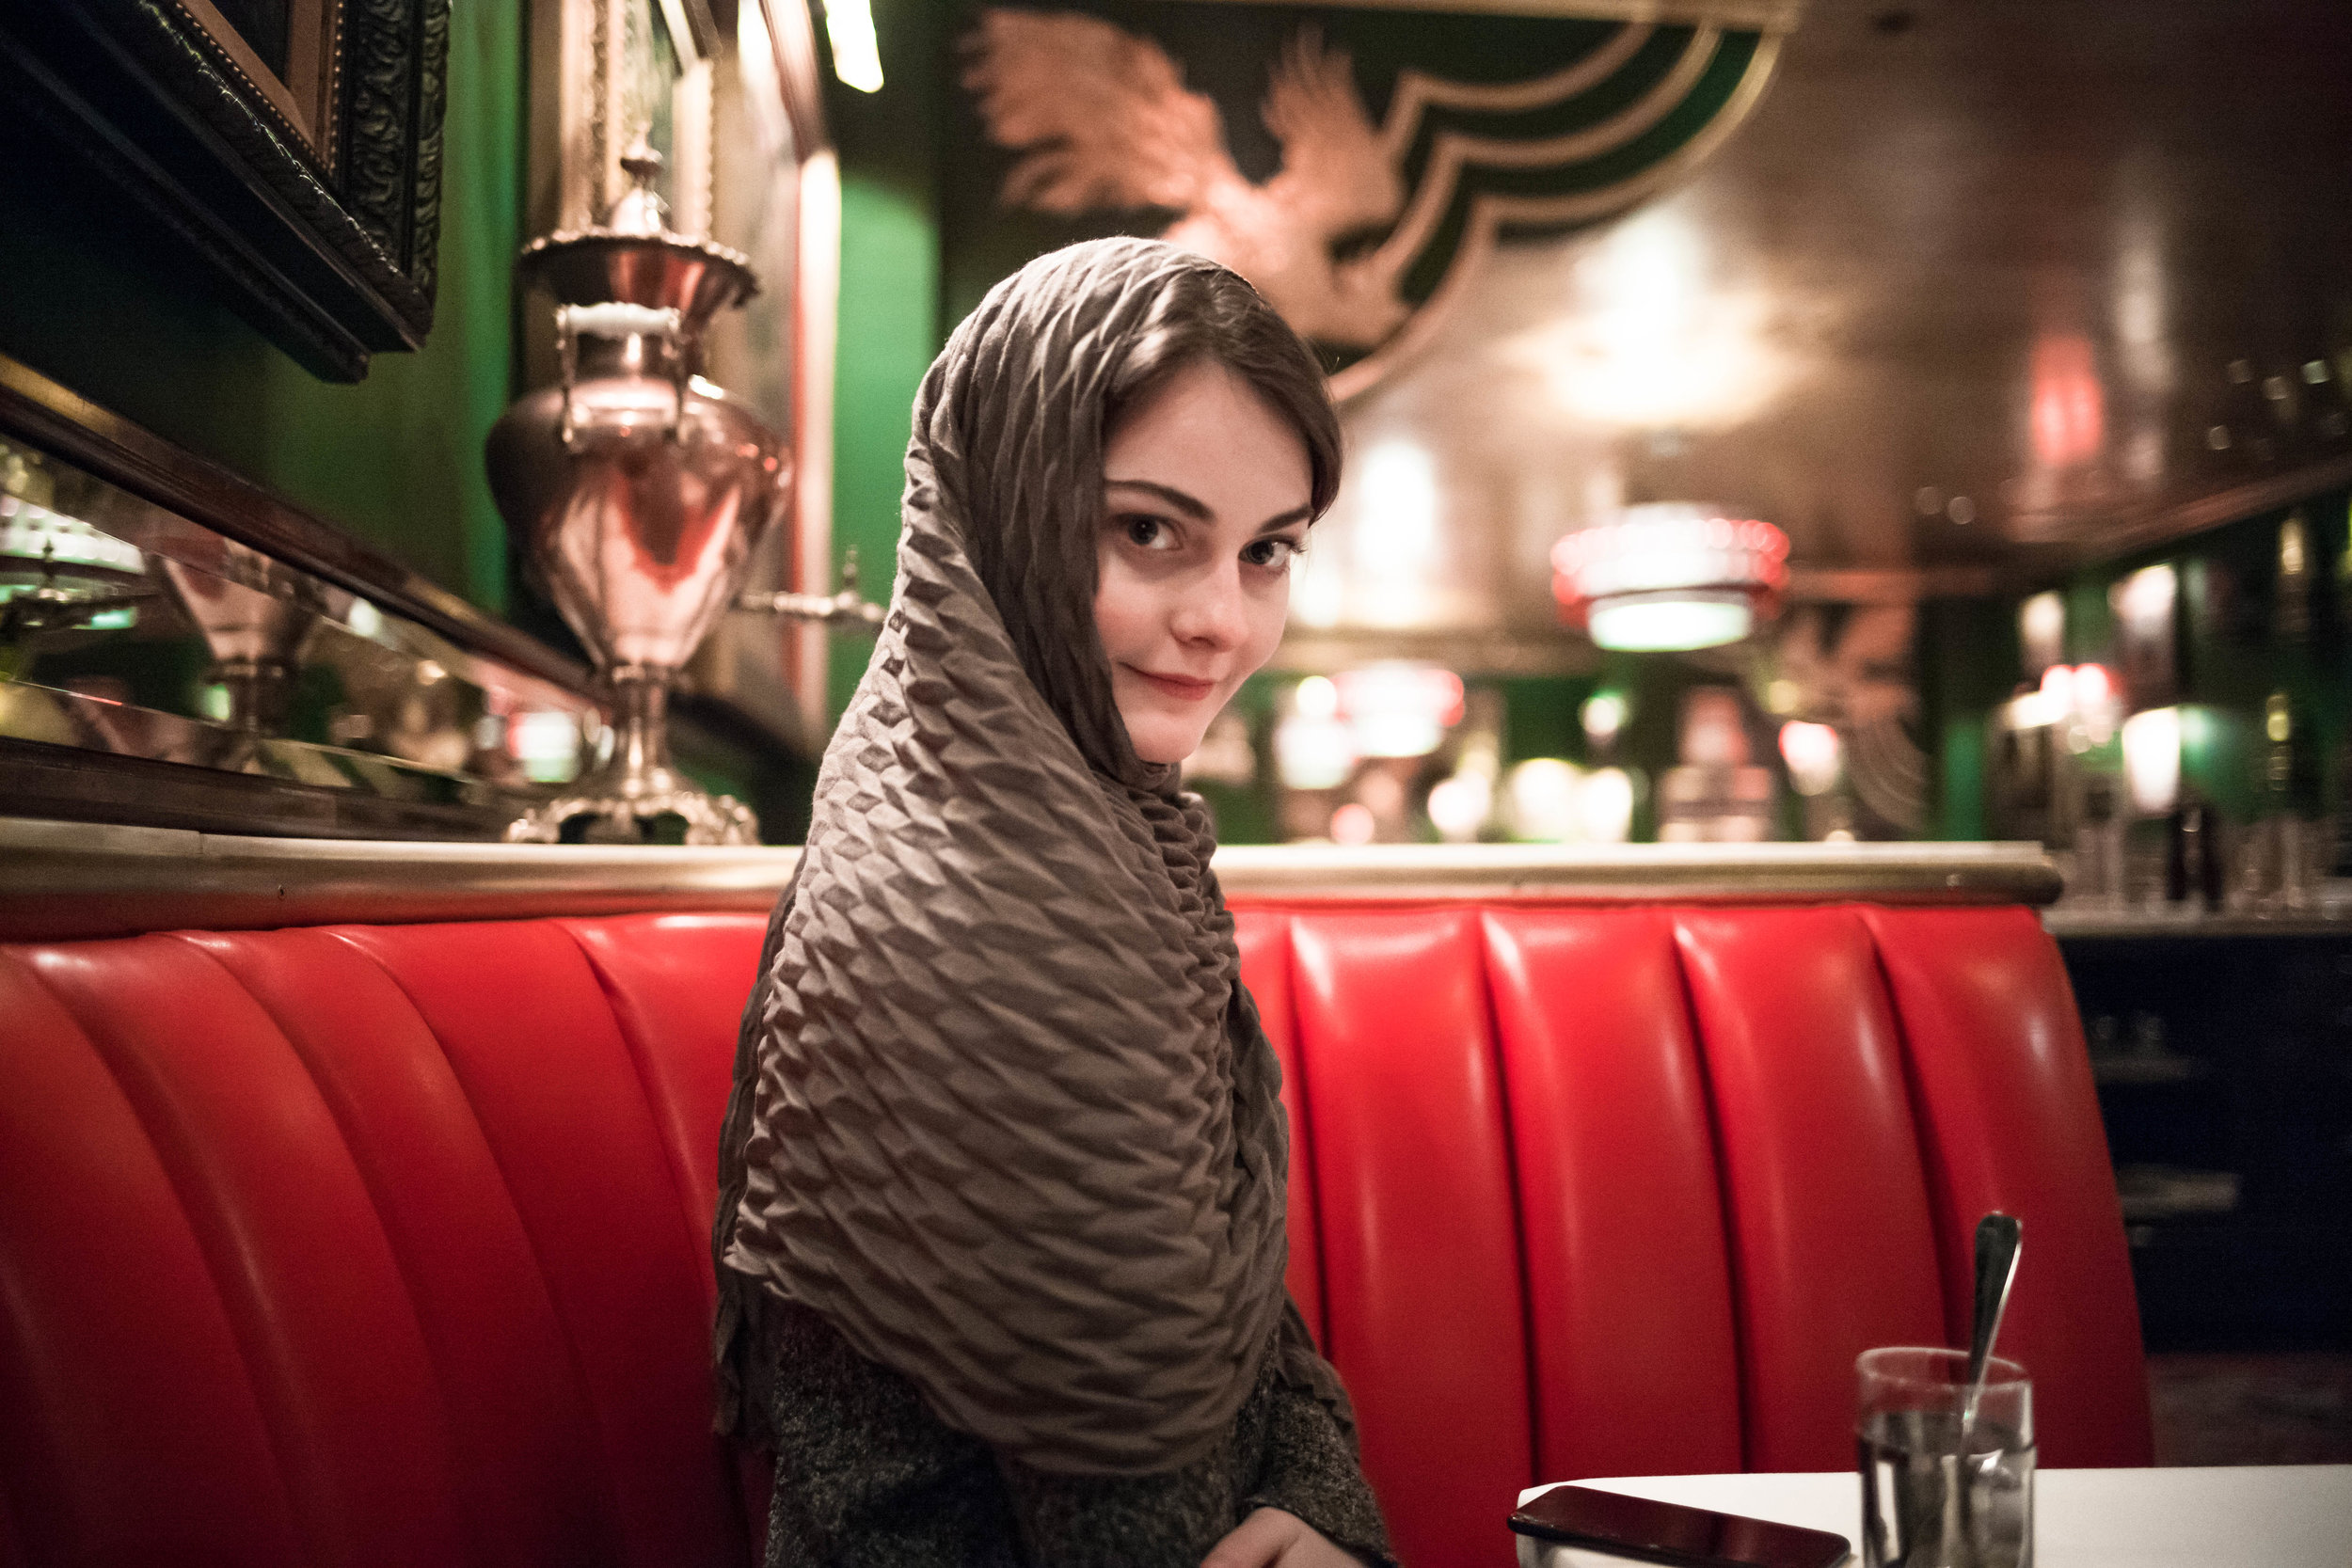 Leica M10 + Leica 28mm f/1.4 Summilux - Doing her best impression of Bolshevik Chic at the Russian Tea Room